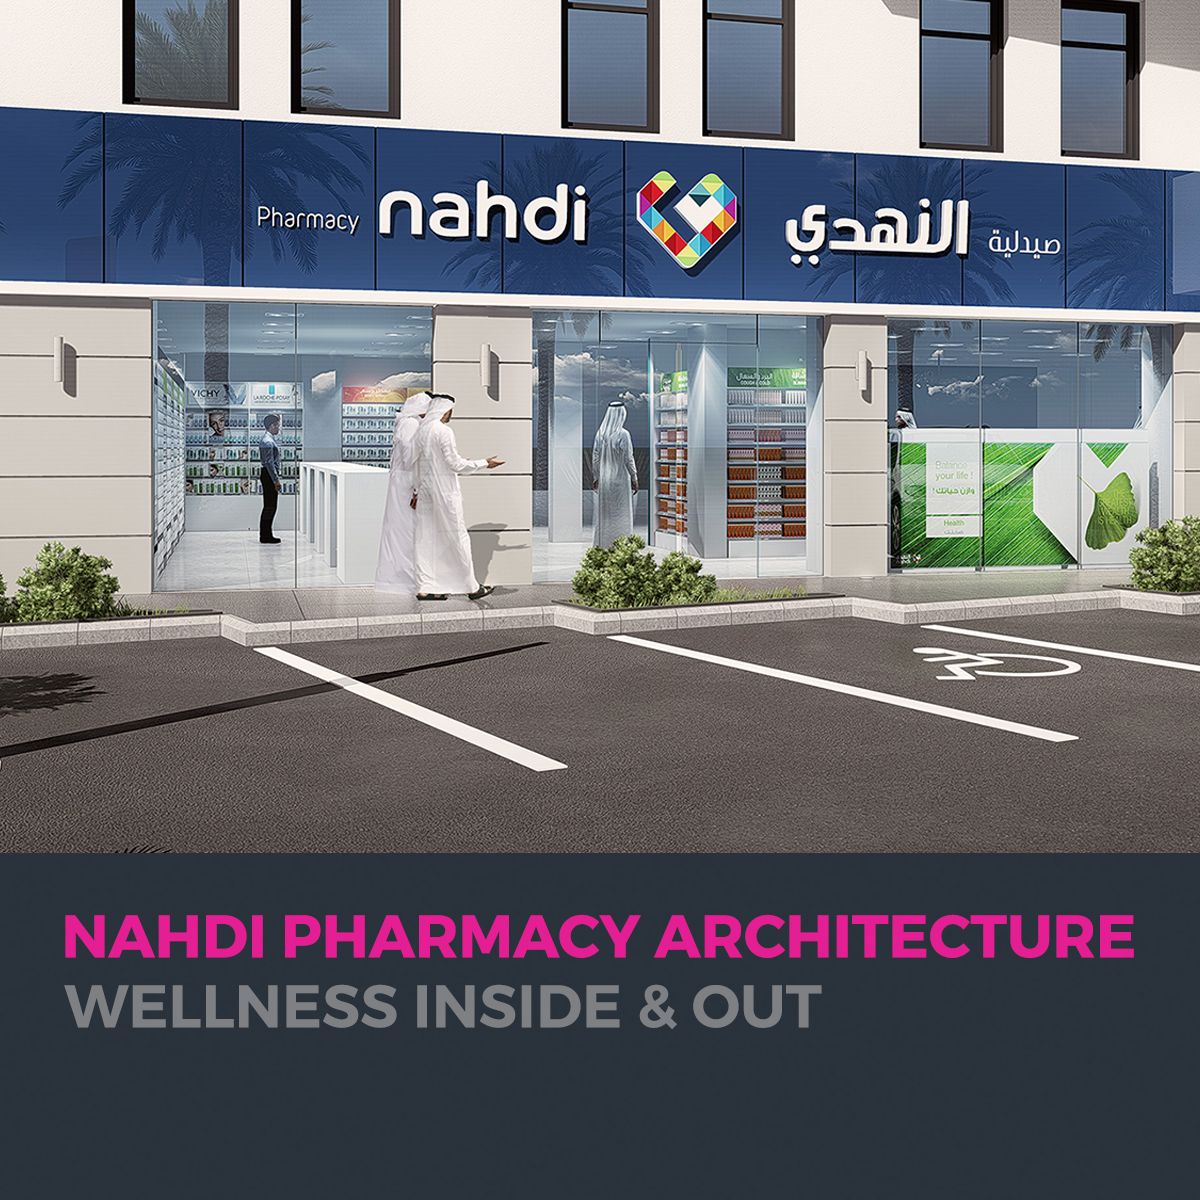 Nahdi pharmacy design